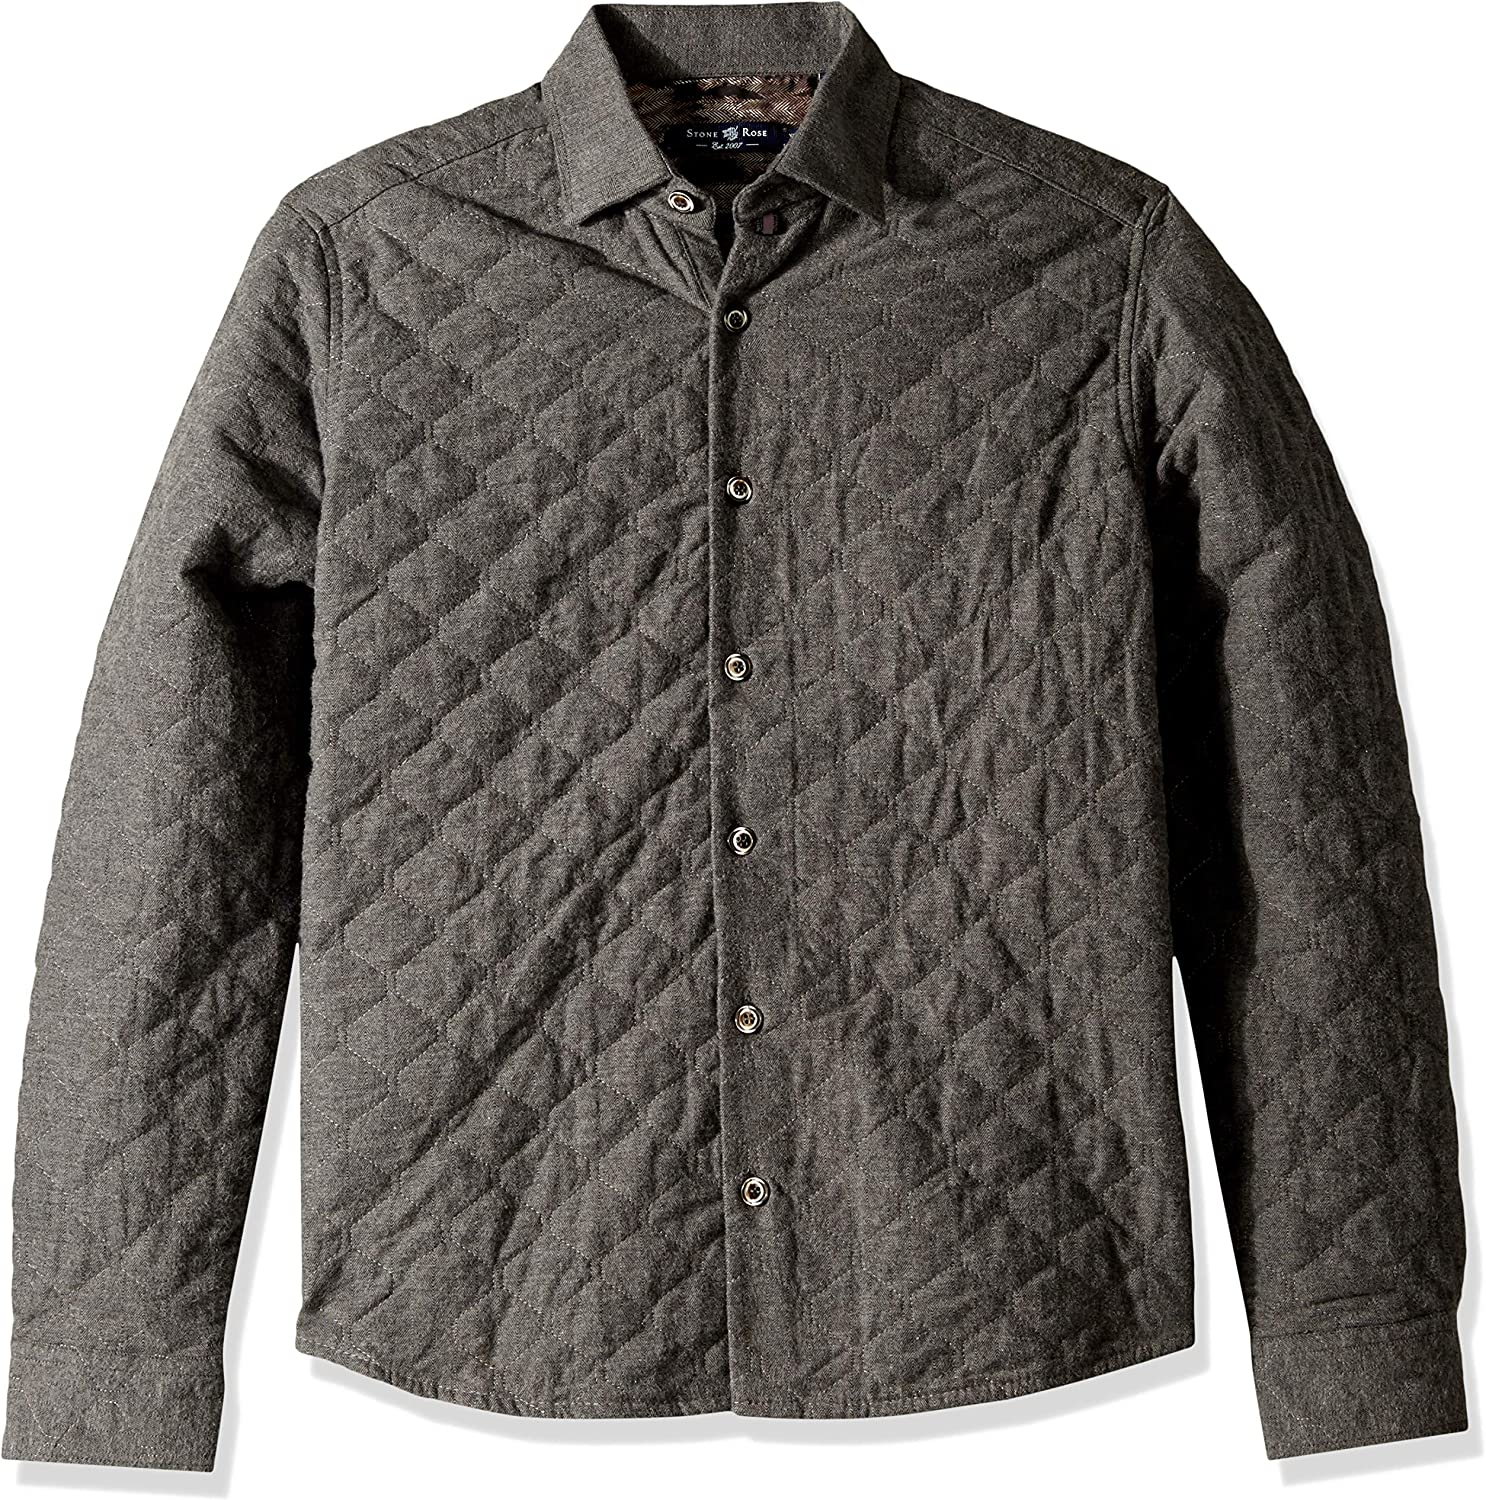 Stone pink Mens Men's Long Sleeve Quilted ShirtJacket Shirt